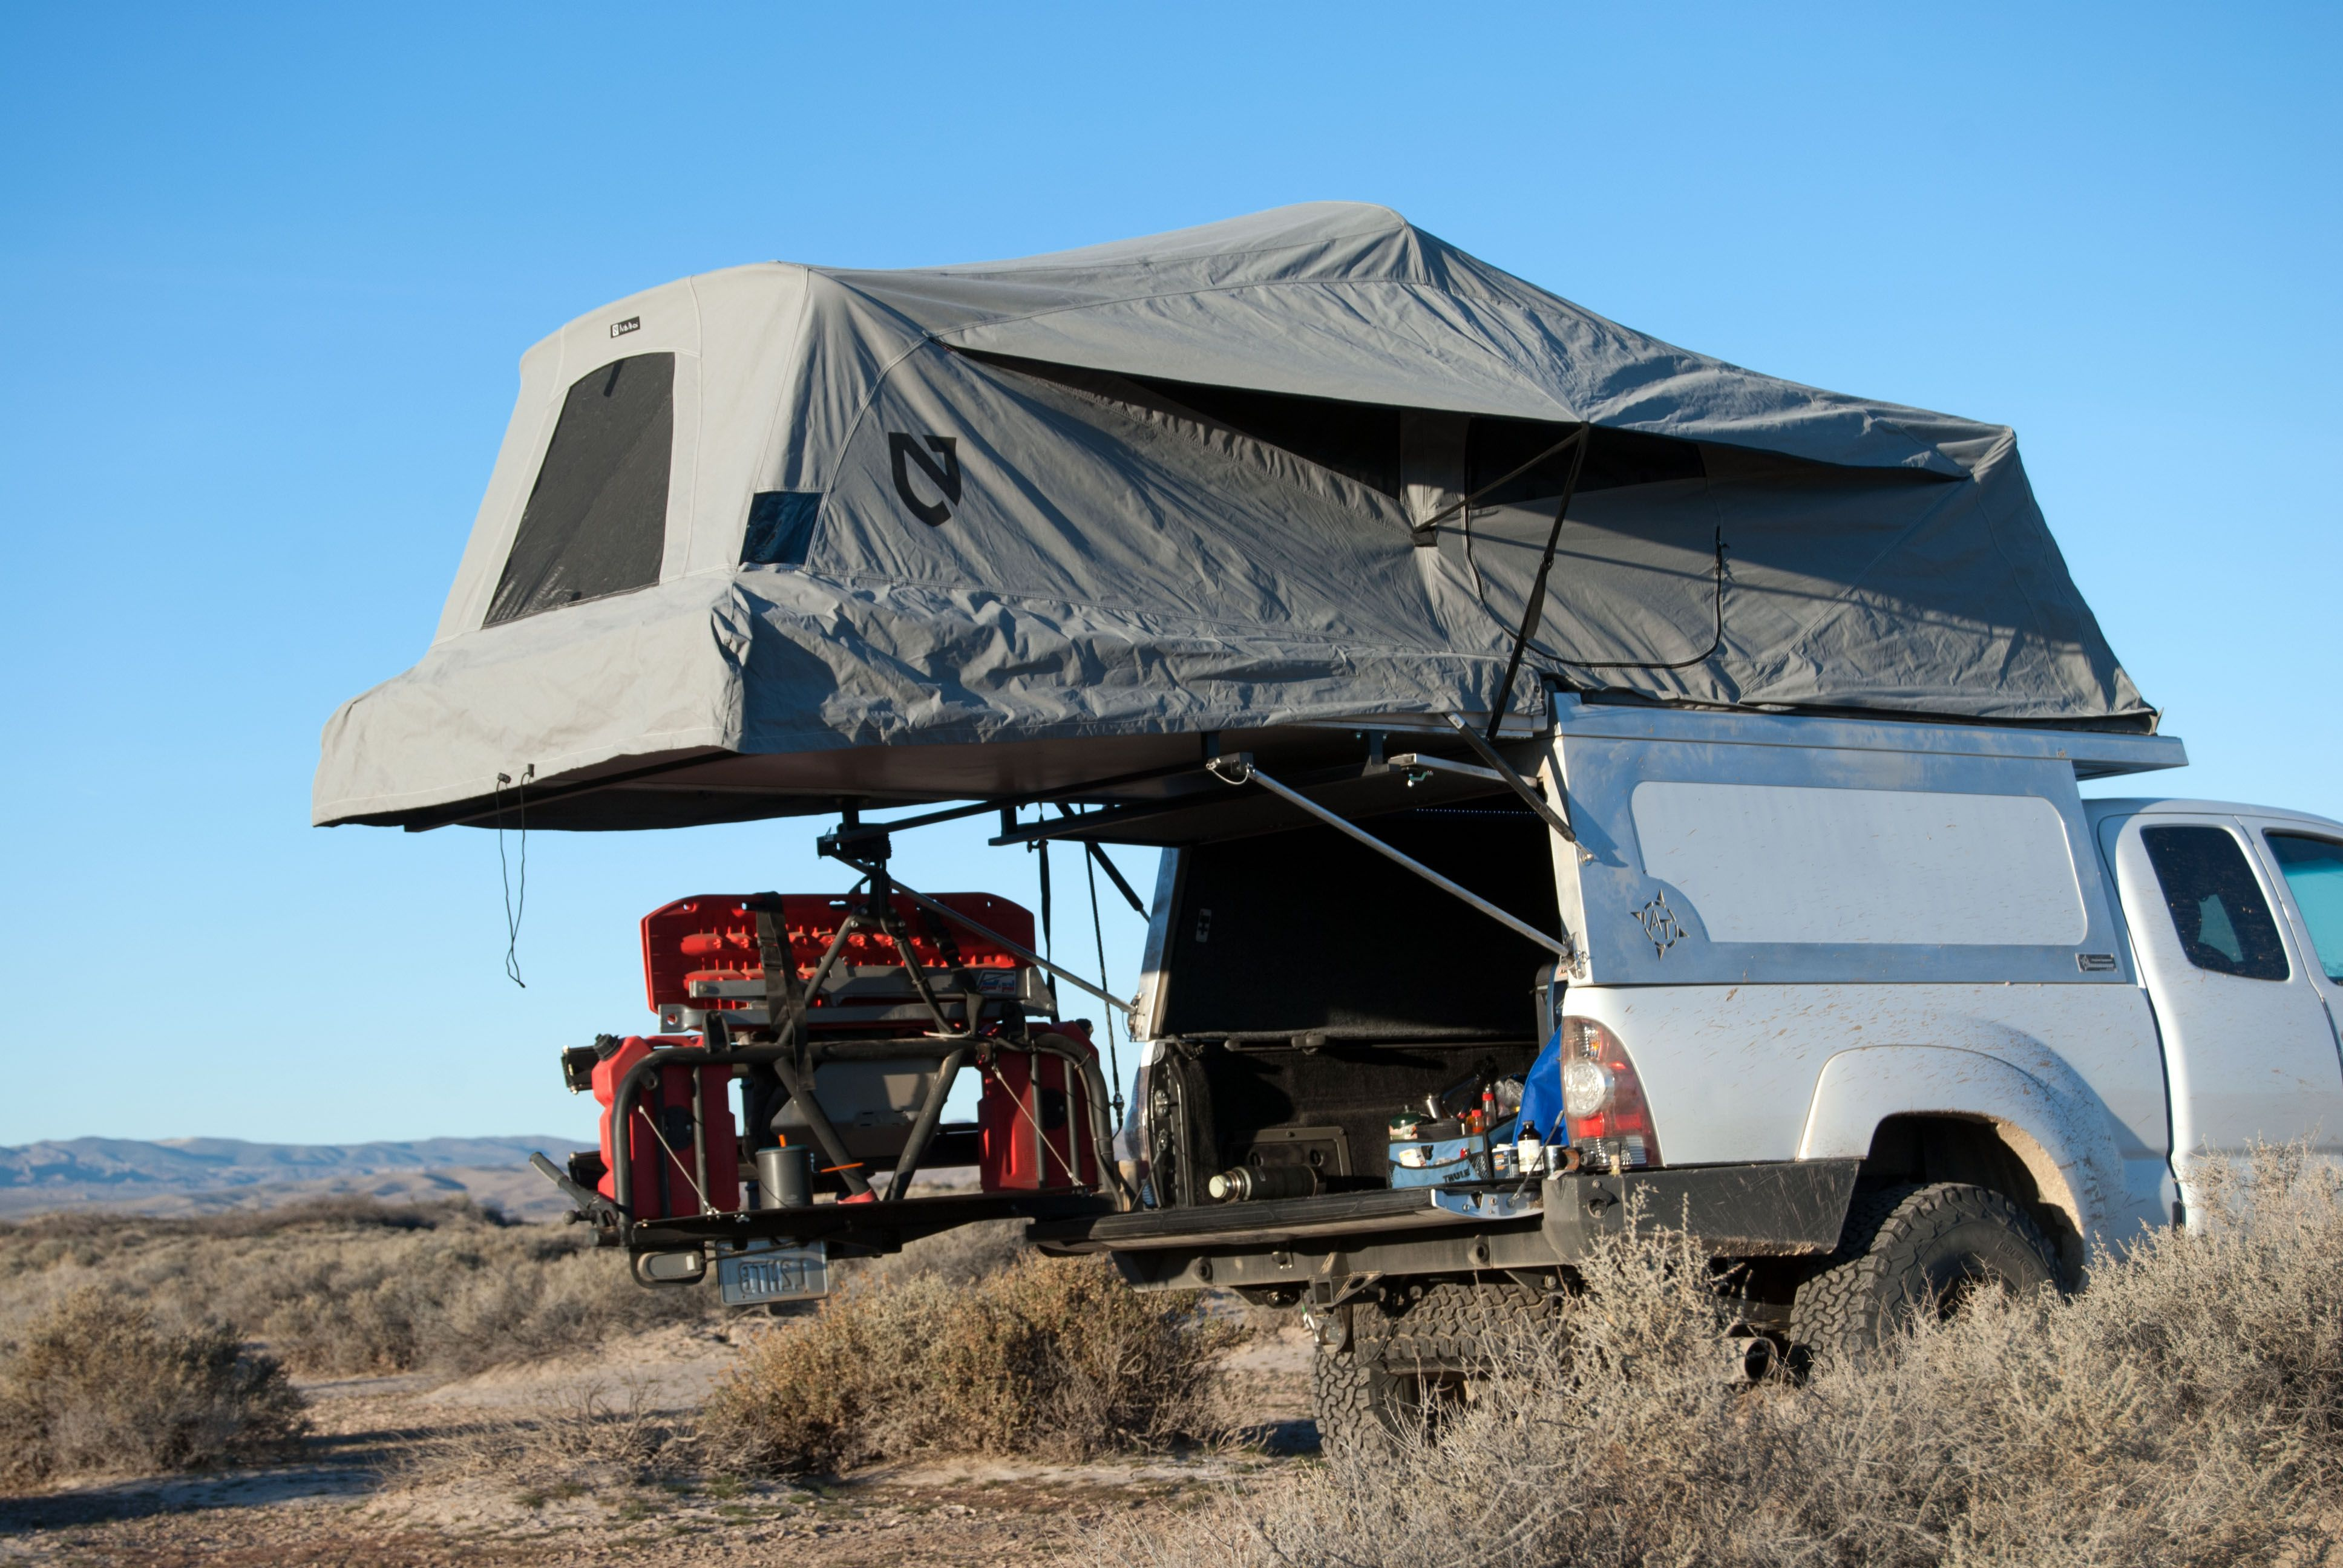 Tacoma Habitat At Overland Gear Truck Topper Camping